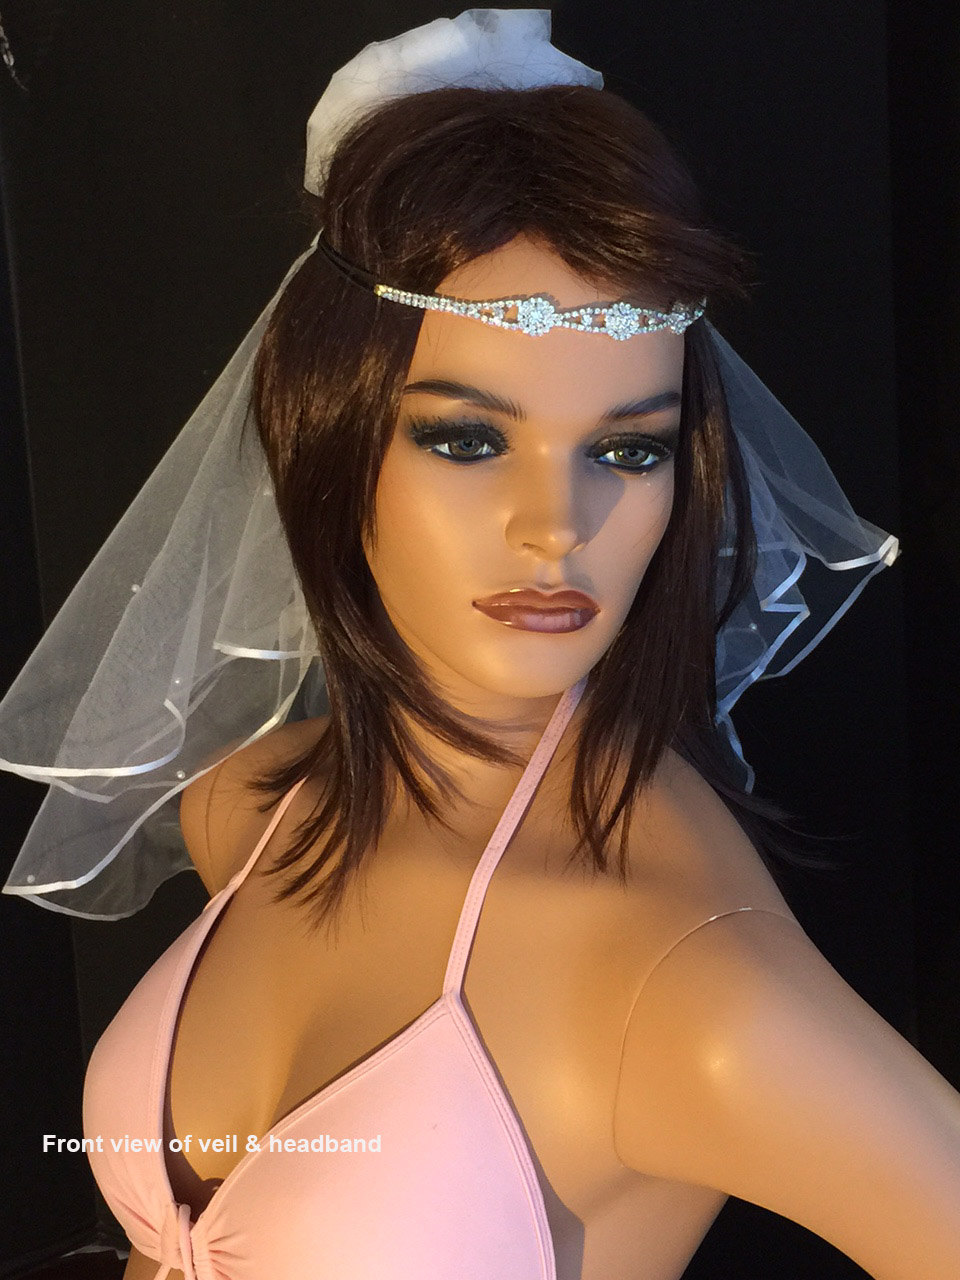 Boho Crystal Headband Choice Of 6 Styles, 2 Tier Veil With Pearls, Veil, Tiers Crystal Headwrap By Val's Veils